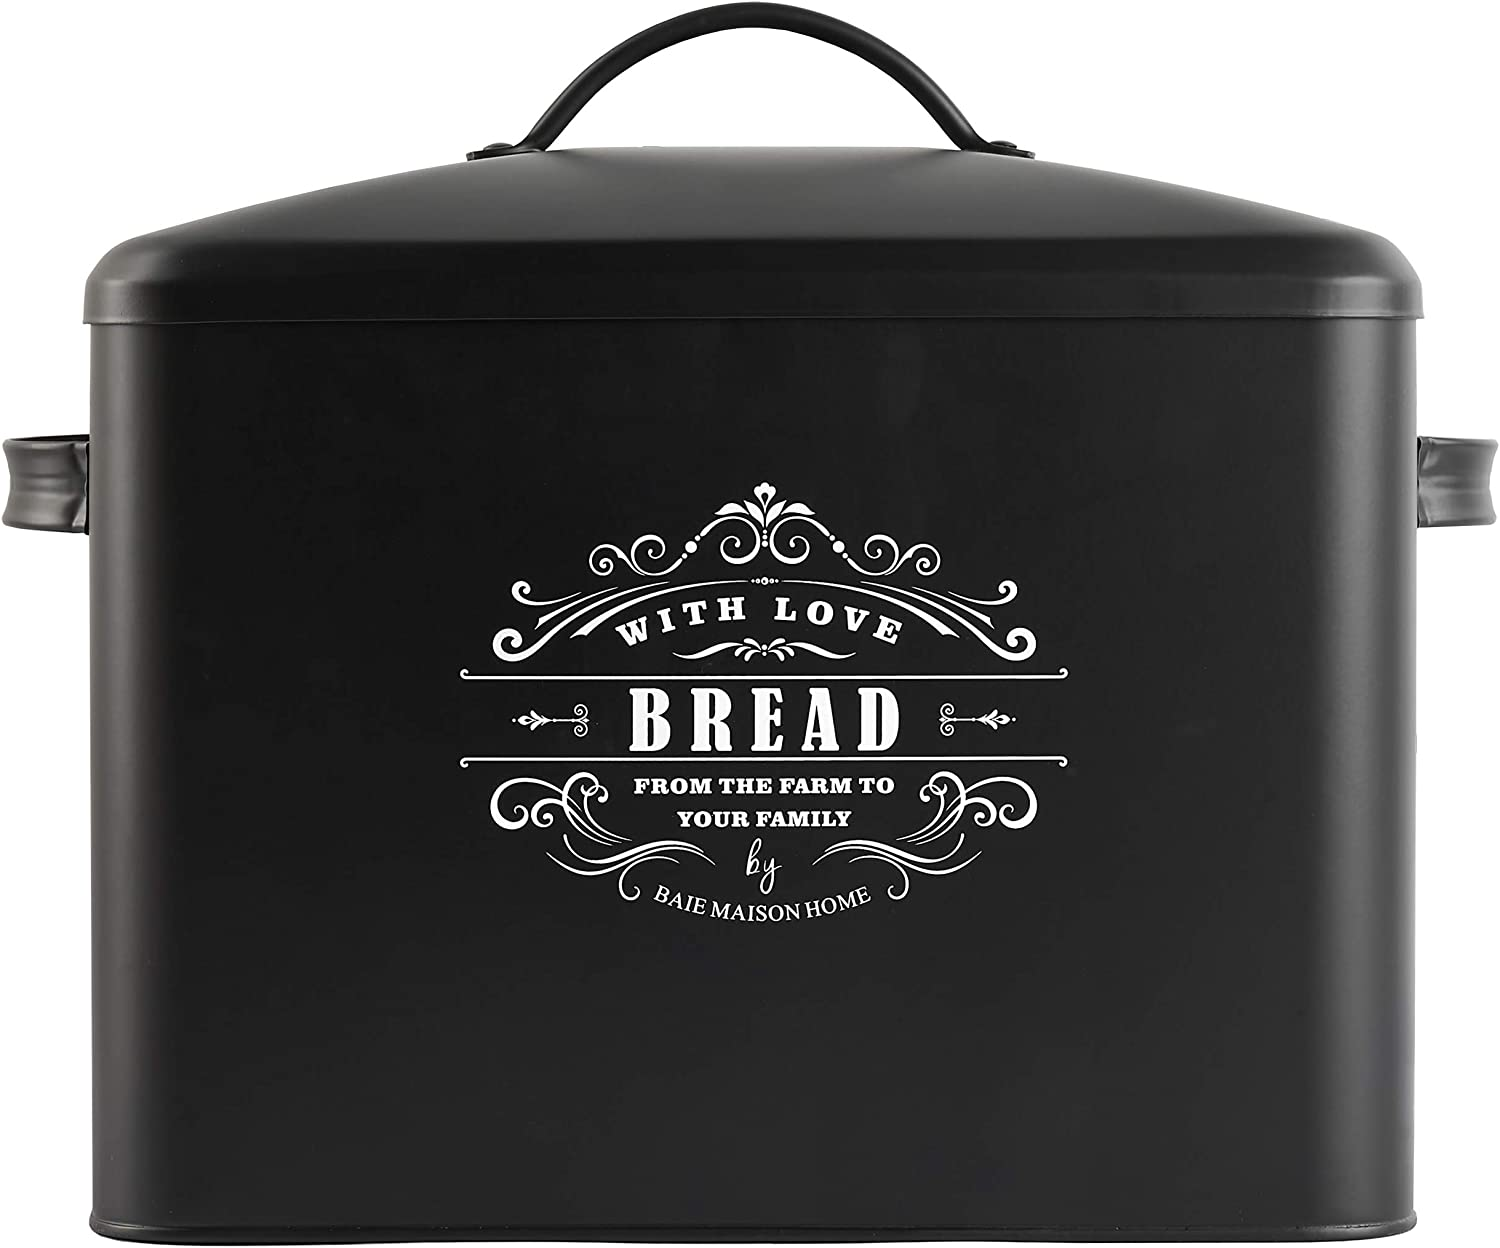 Extra Large Black Bread Box - Bread Boxes for Kitchen Counter Holds 2+ Loaves for All Your Bread Storage - Bread Container Counter Organizer to Suit Farmhouse Kitchen Decor, Vintage Kitchen, Rustic